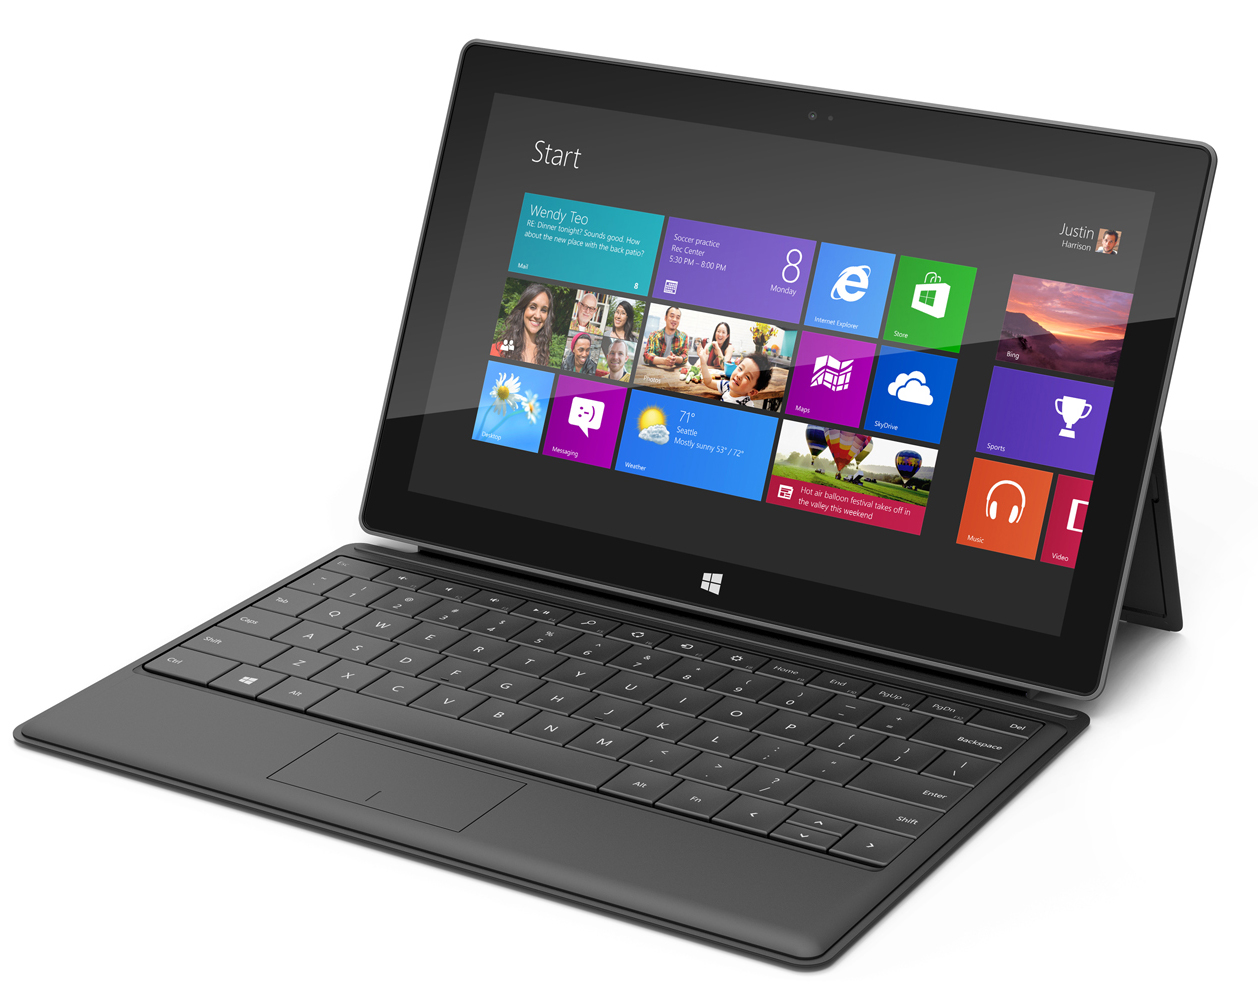 Is the Surface Going To Replace My Laptop?